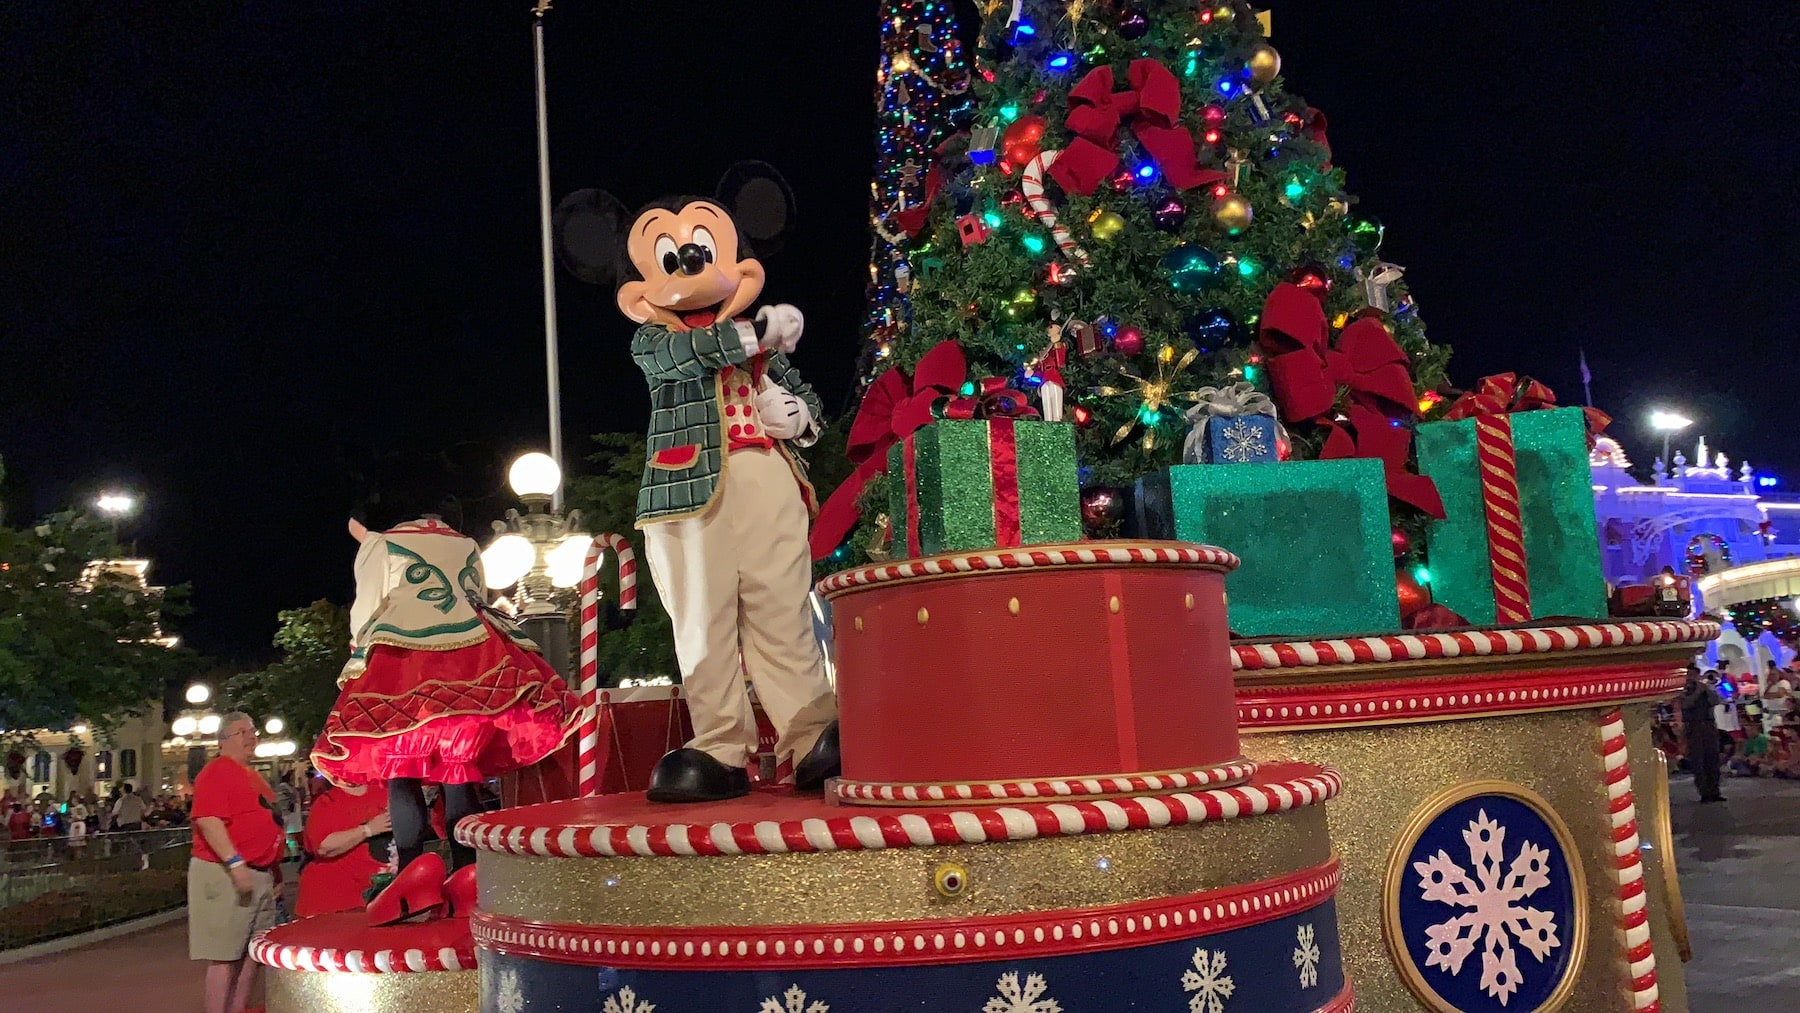 Mickey Mouse in Very Merry Christmas Parade Magic Kingdom